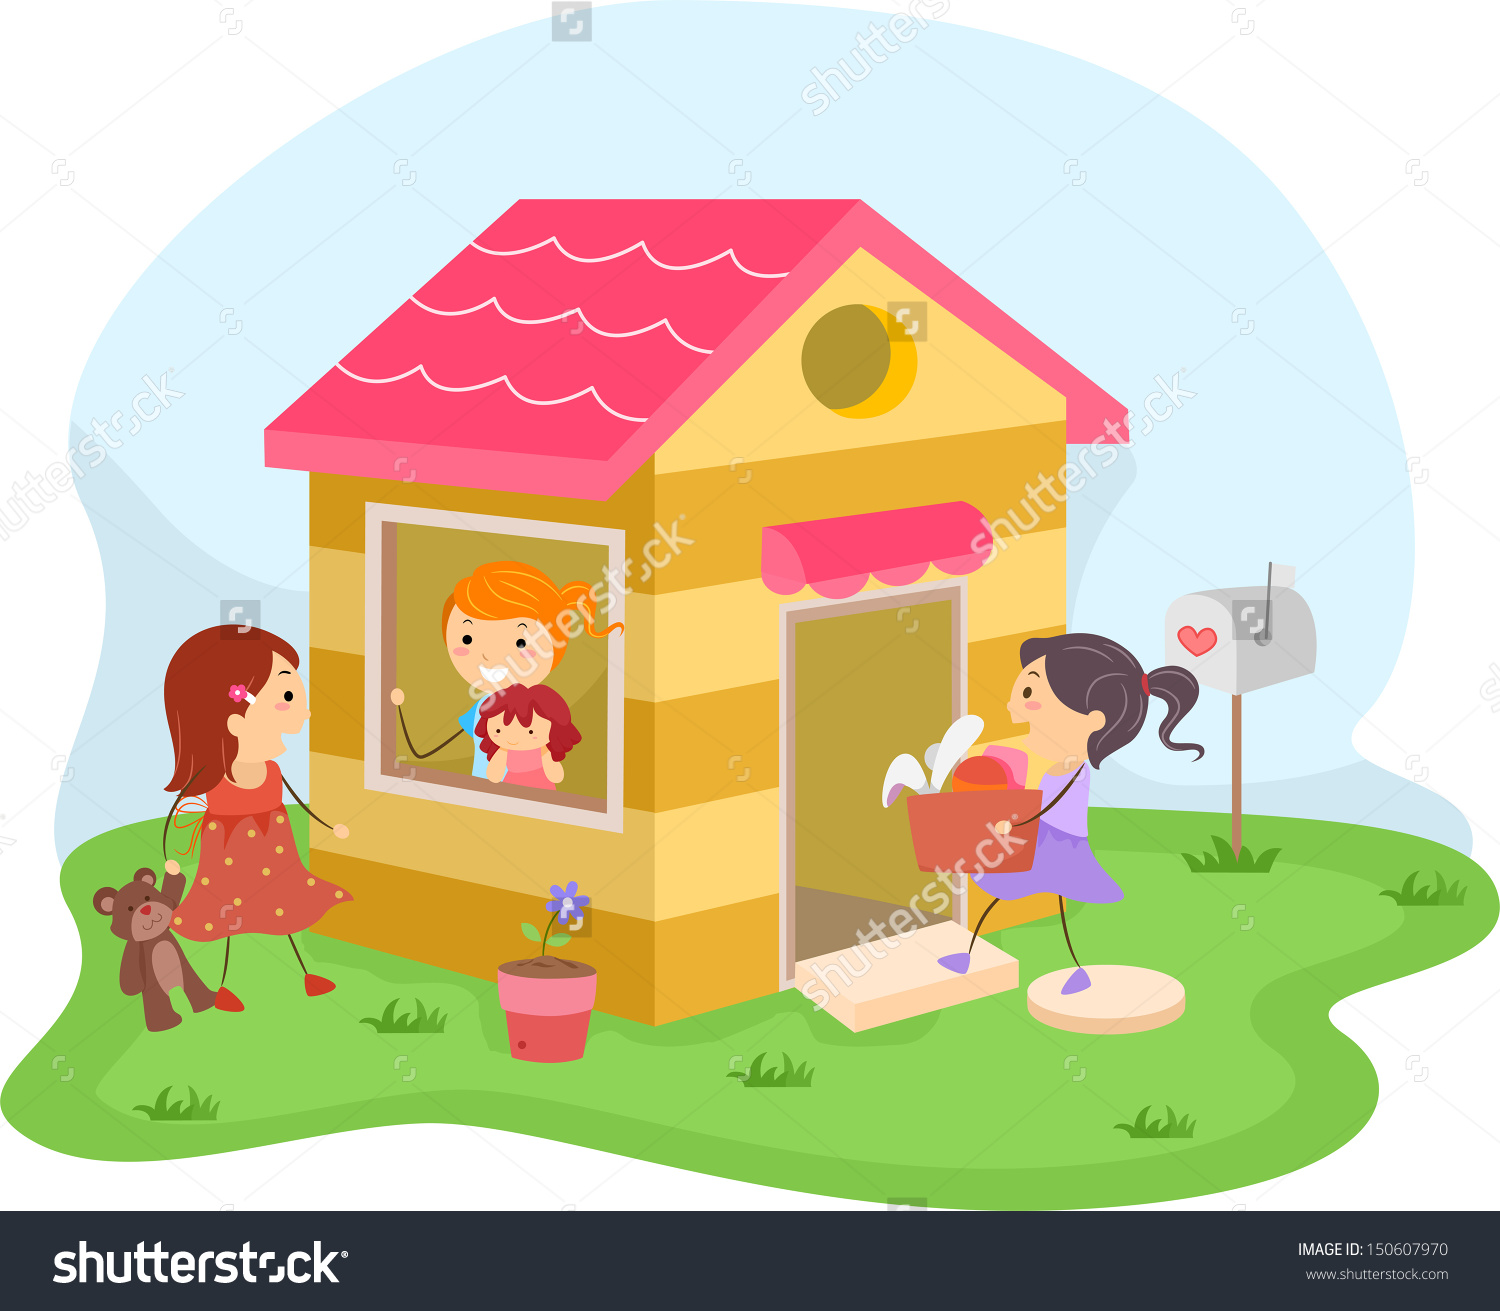 Illustration Group Girls Playing House Stock Vector 150607970.